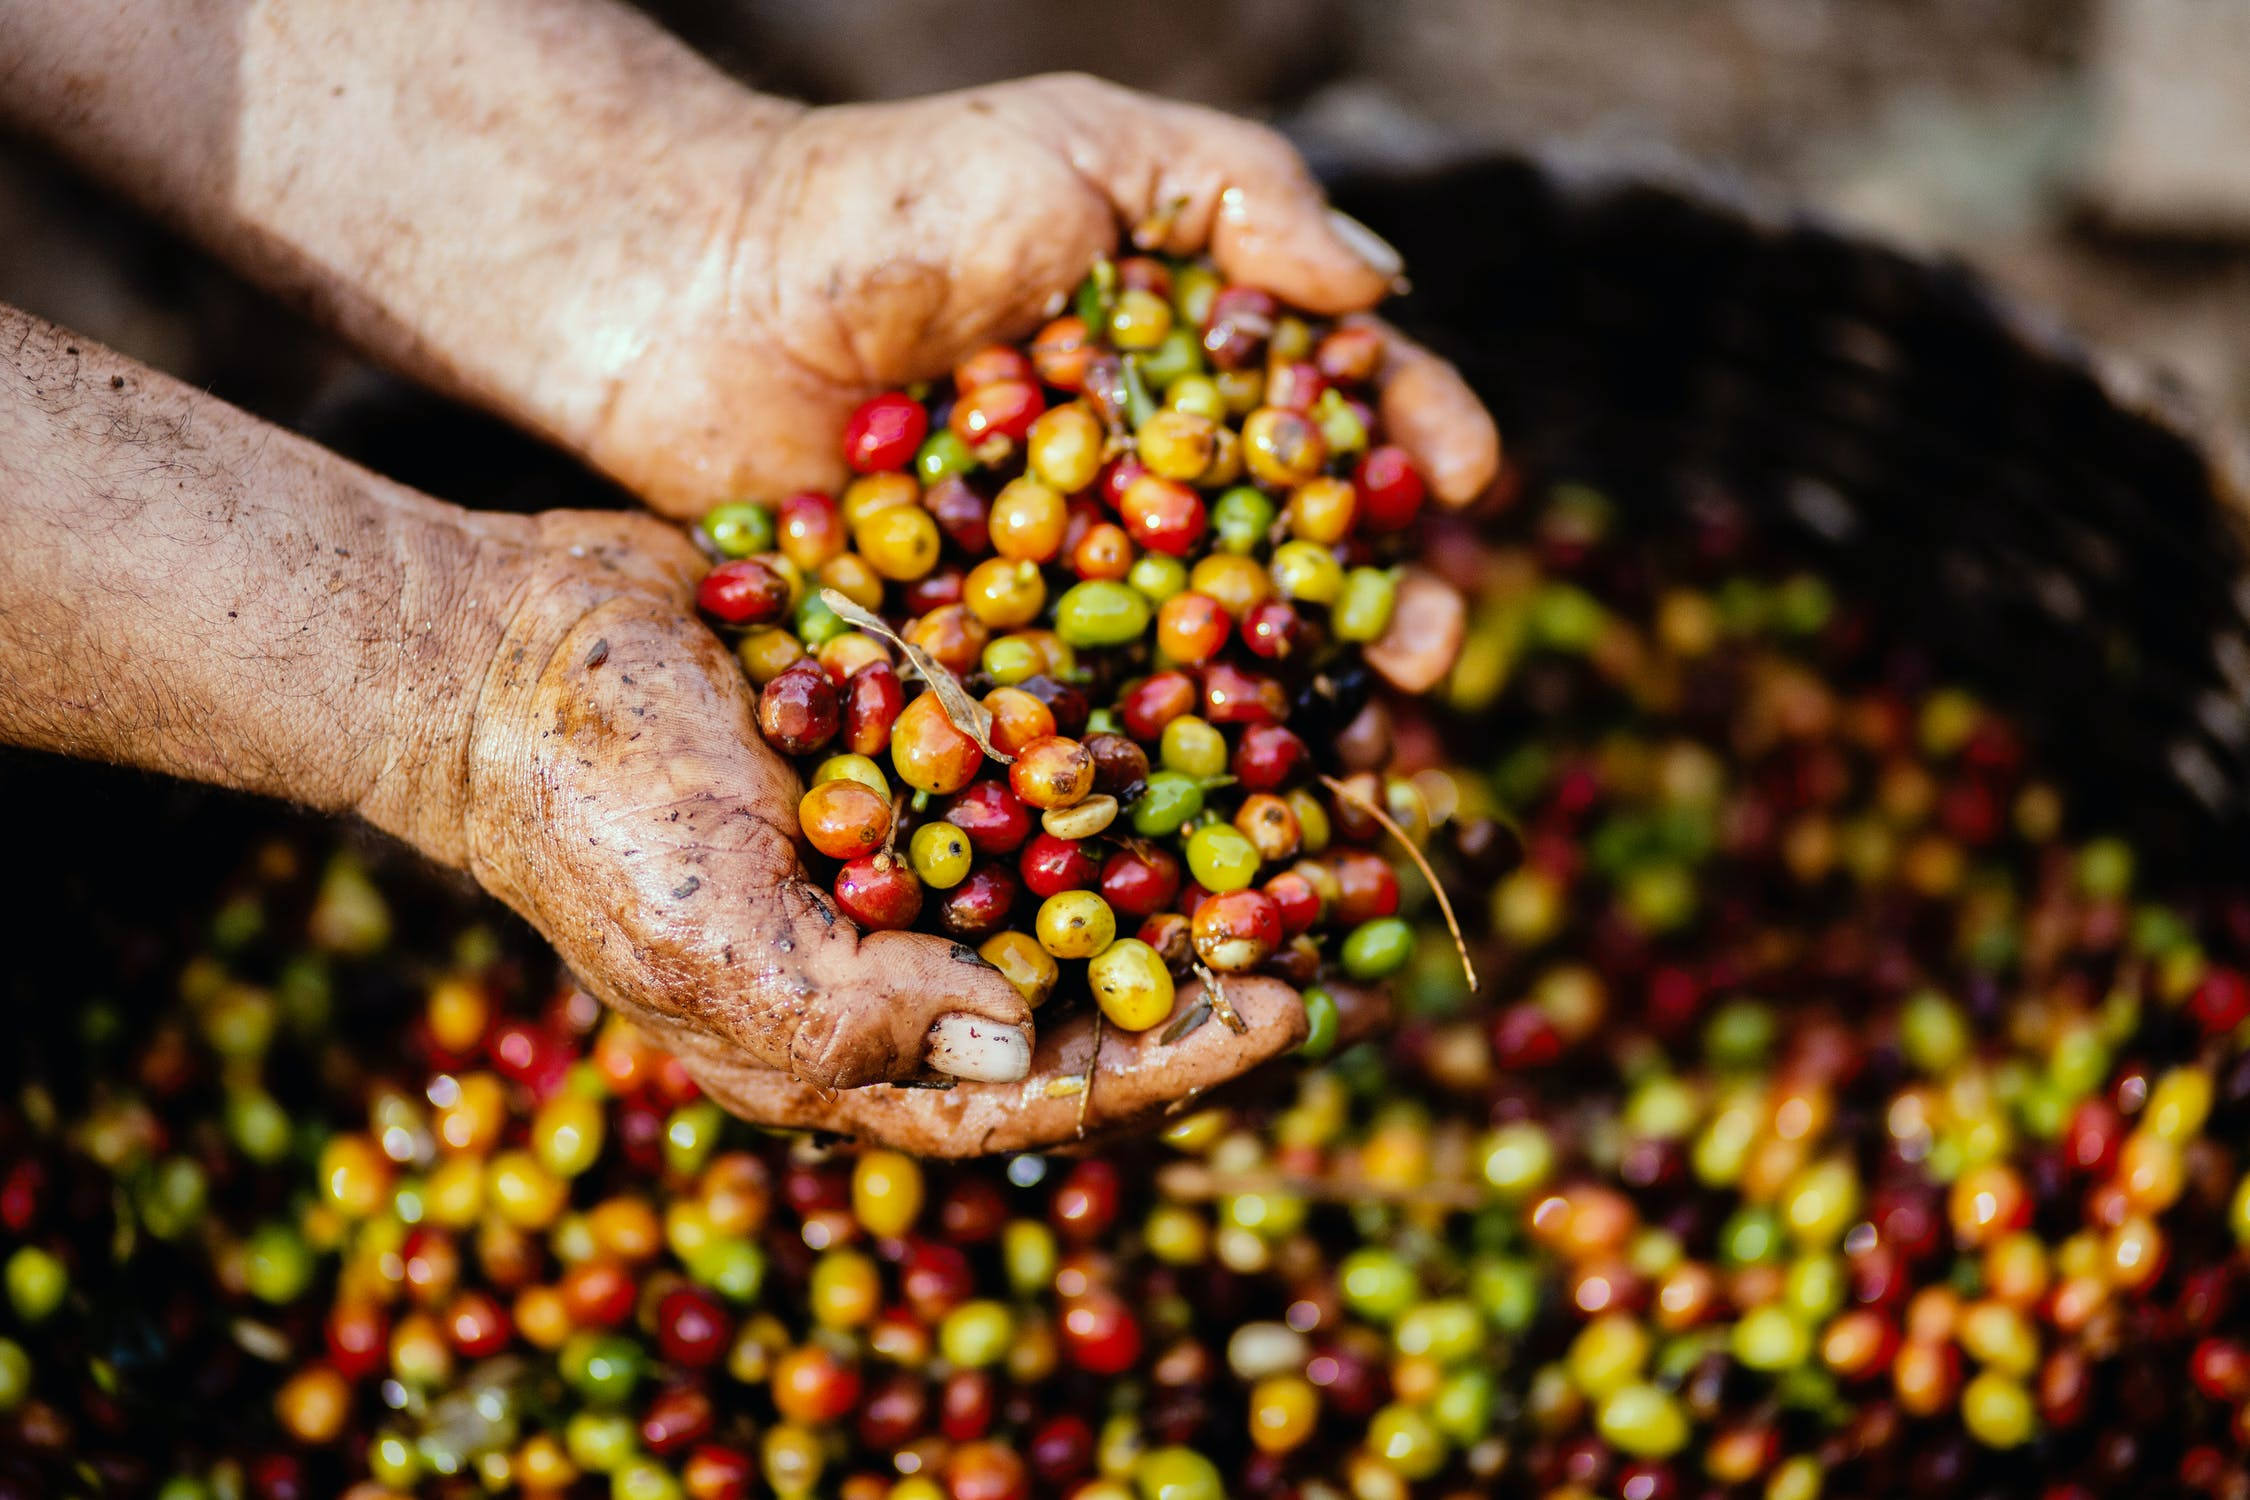 Blockchain traceability solutions for the coffee supply chain's equality